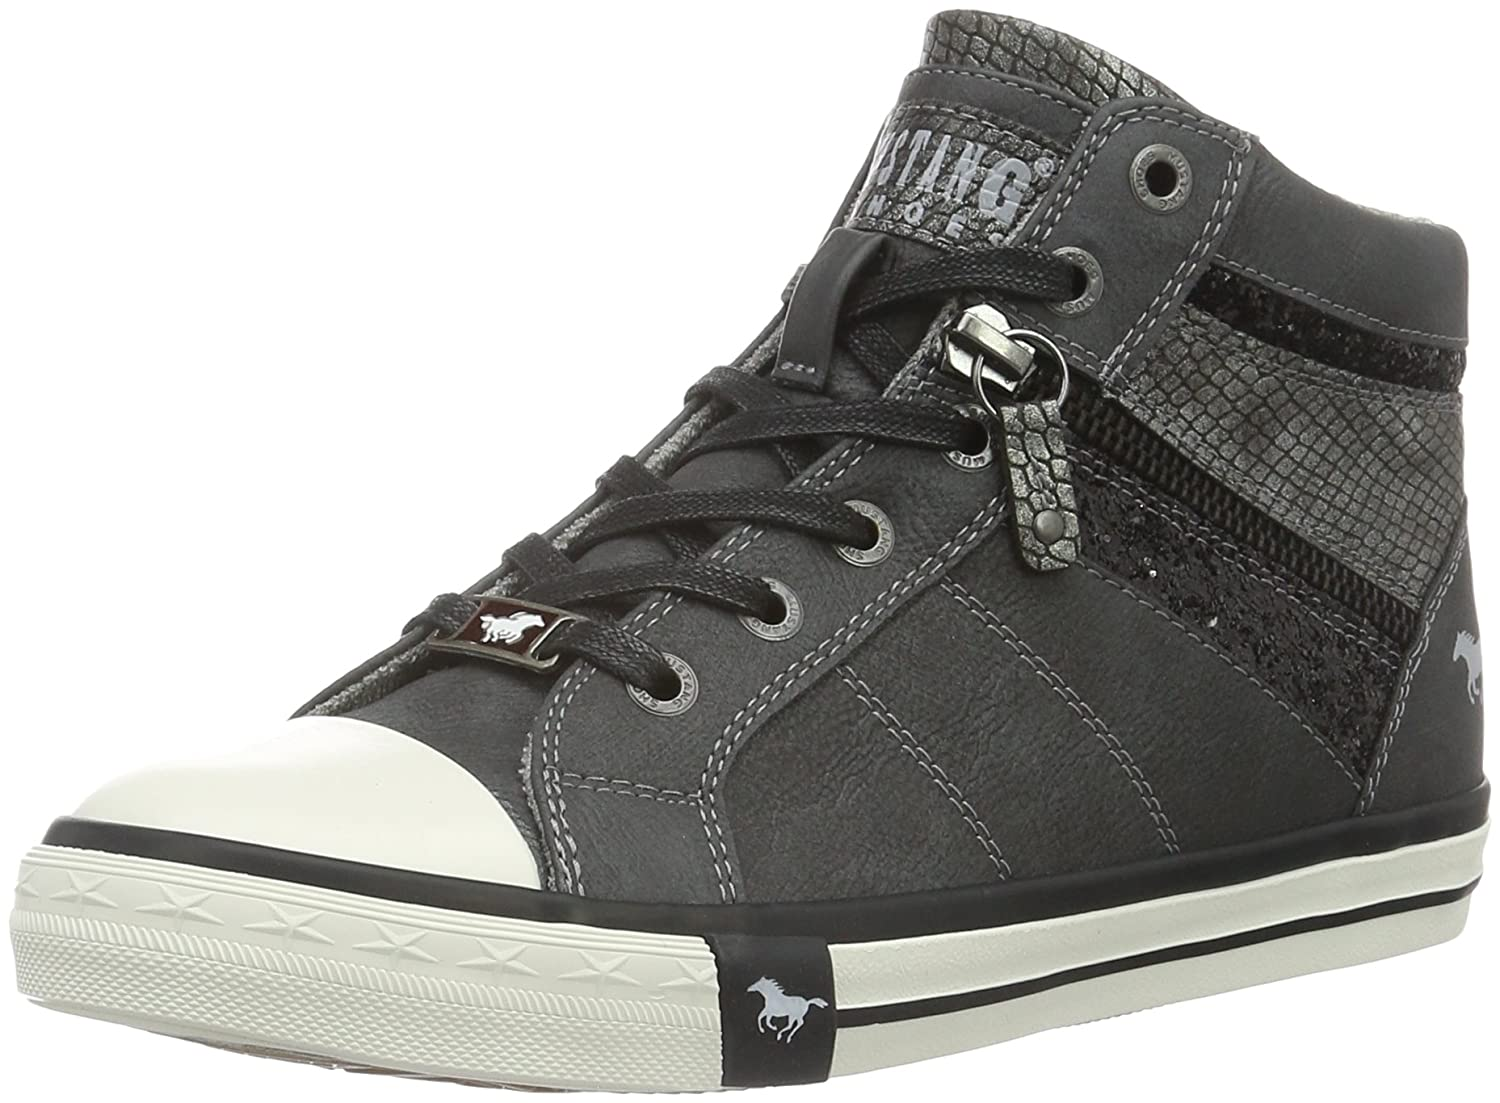 Womens 1146-508-259 Hi-Top Trainers Mustang MJHkP0yqe